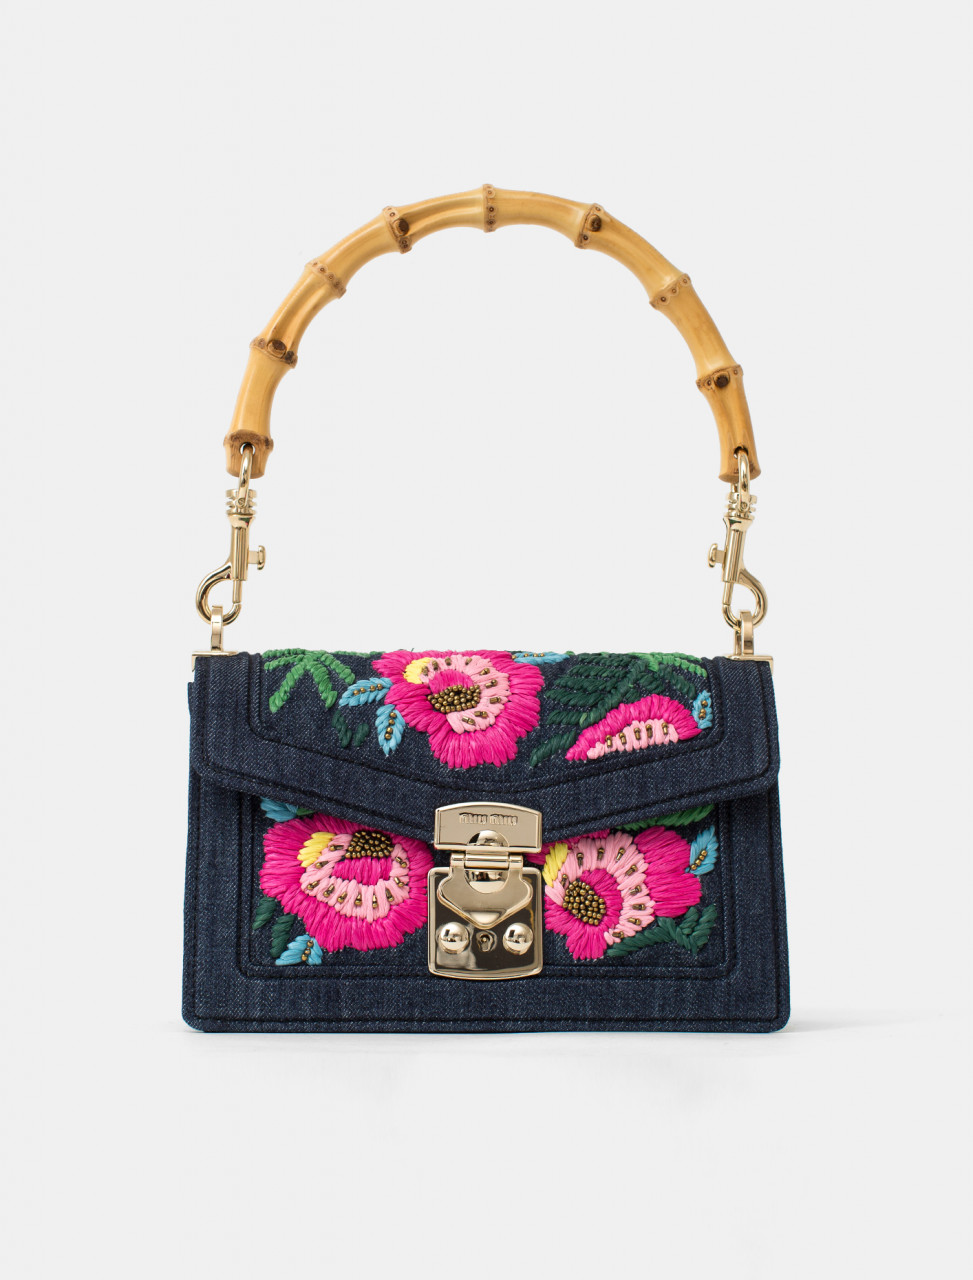 Embroidered Flower Denim Handbag with Bamboo Handle